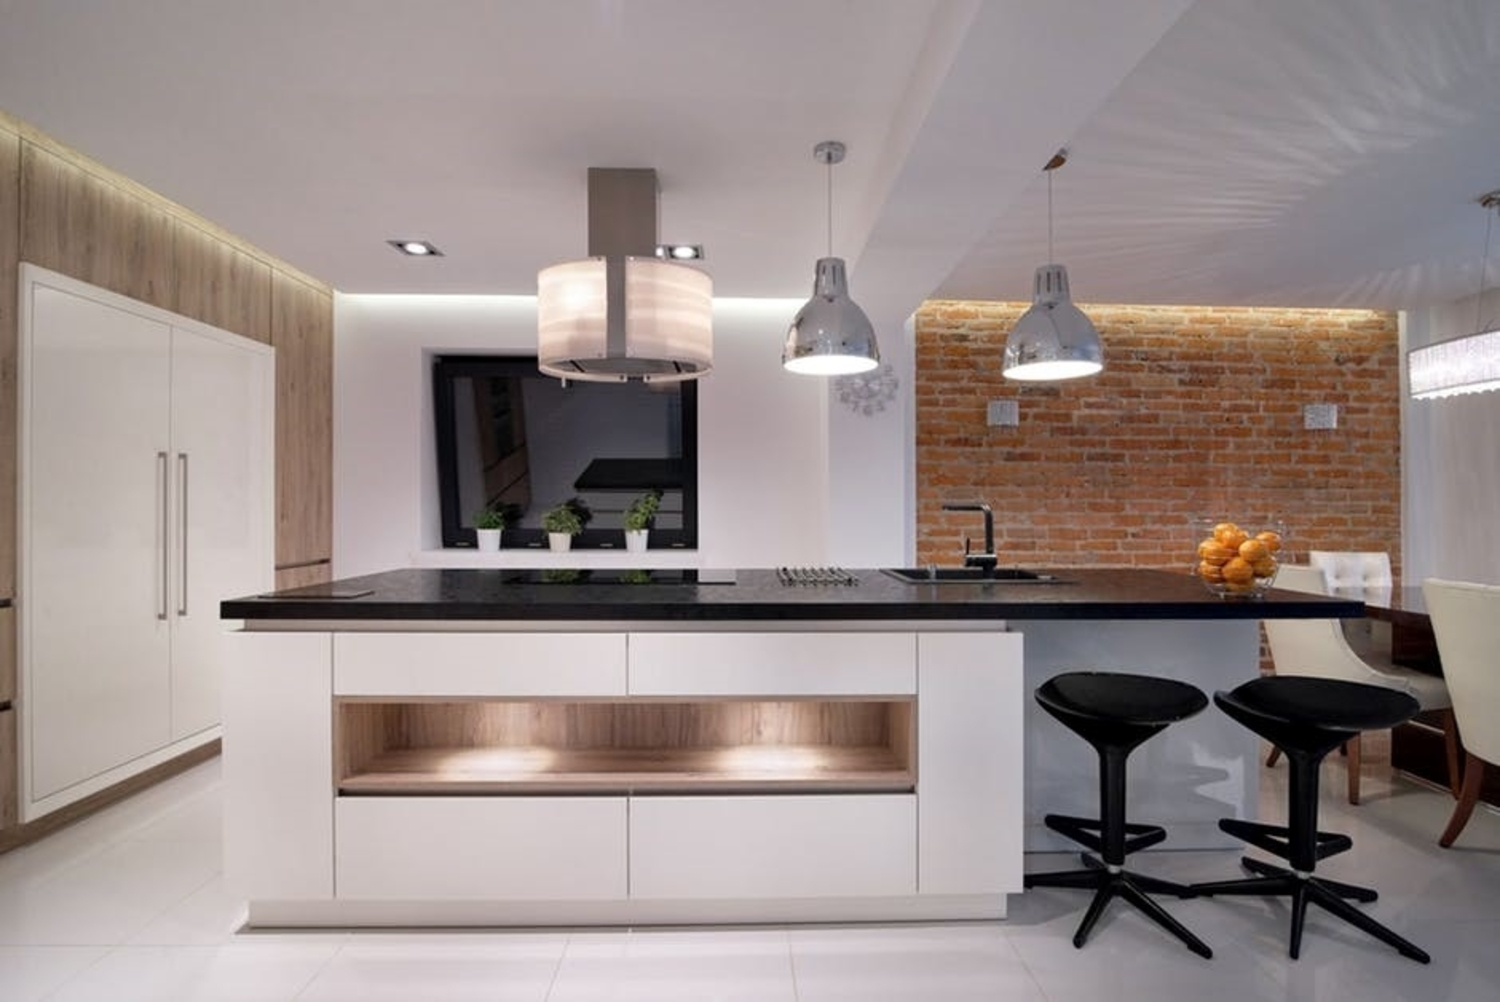 Get Creative in the Kitchen - Give Your House a Touch of luxury Without Breaking the Bank